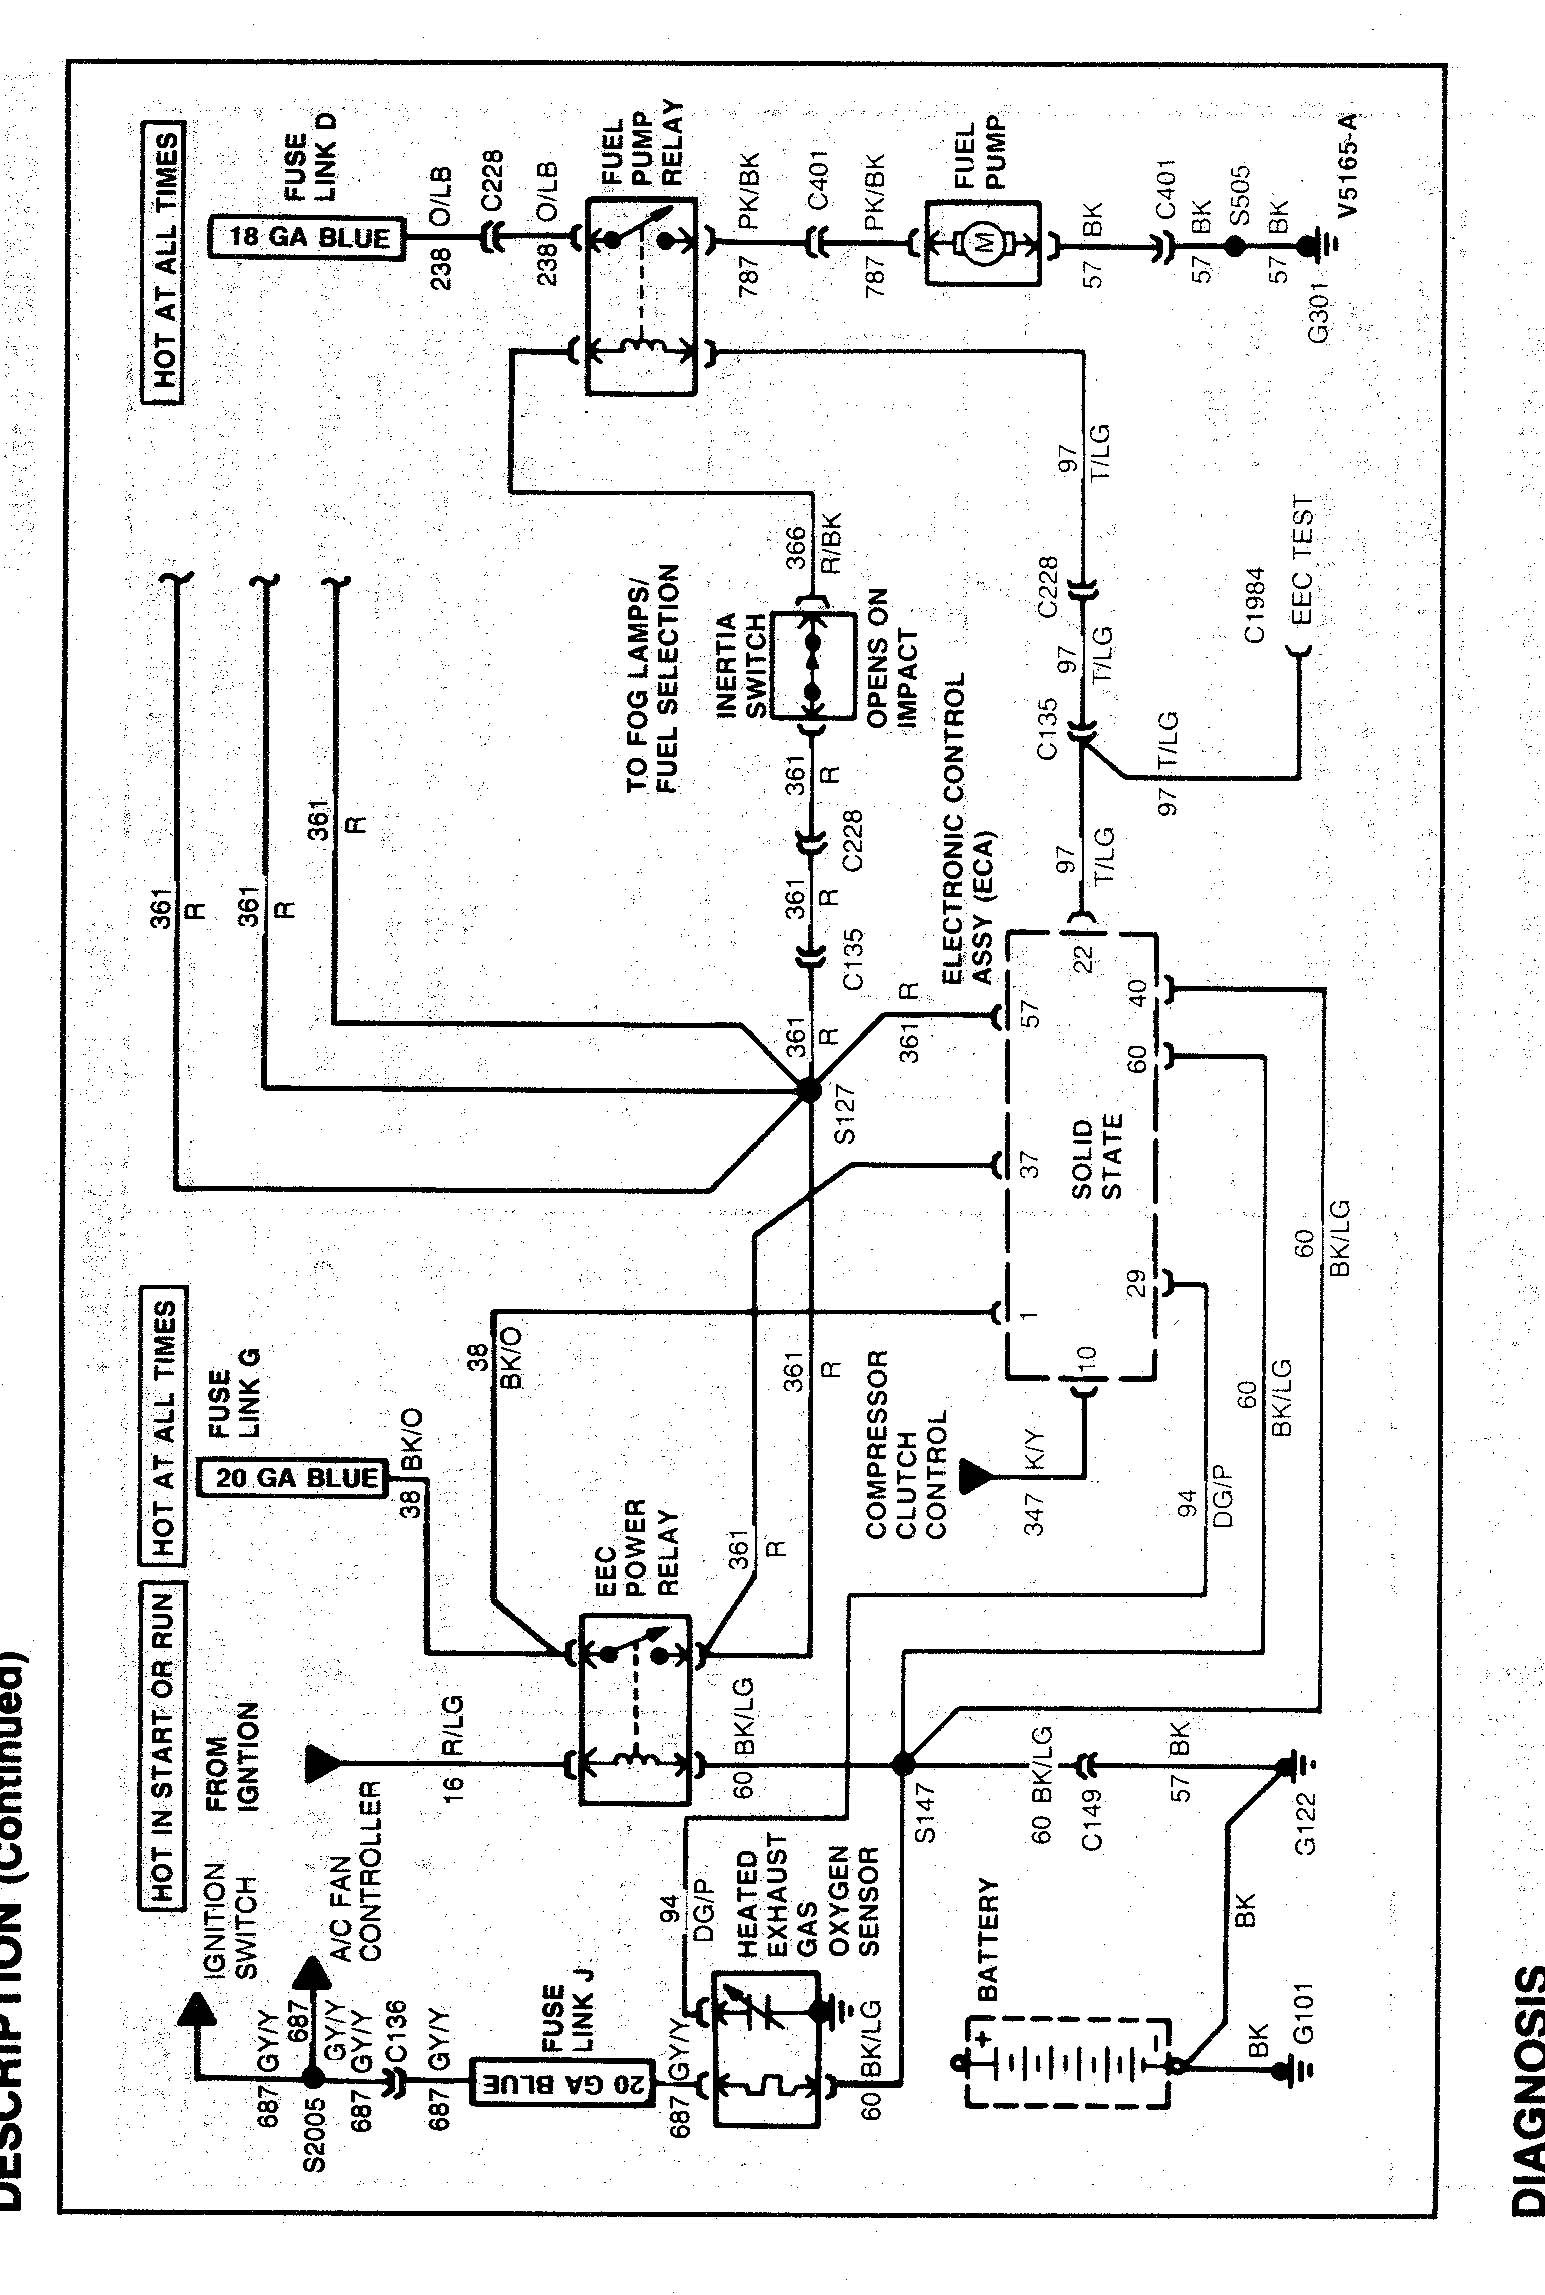 1997 Ford Explorer 5 0 Wiring Diagram – Wirdig – readingrat.net